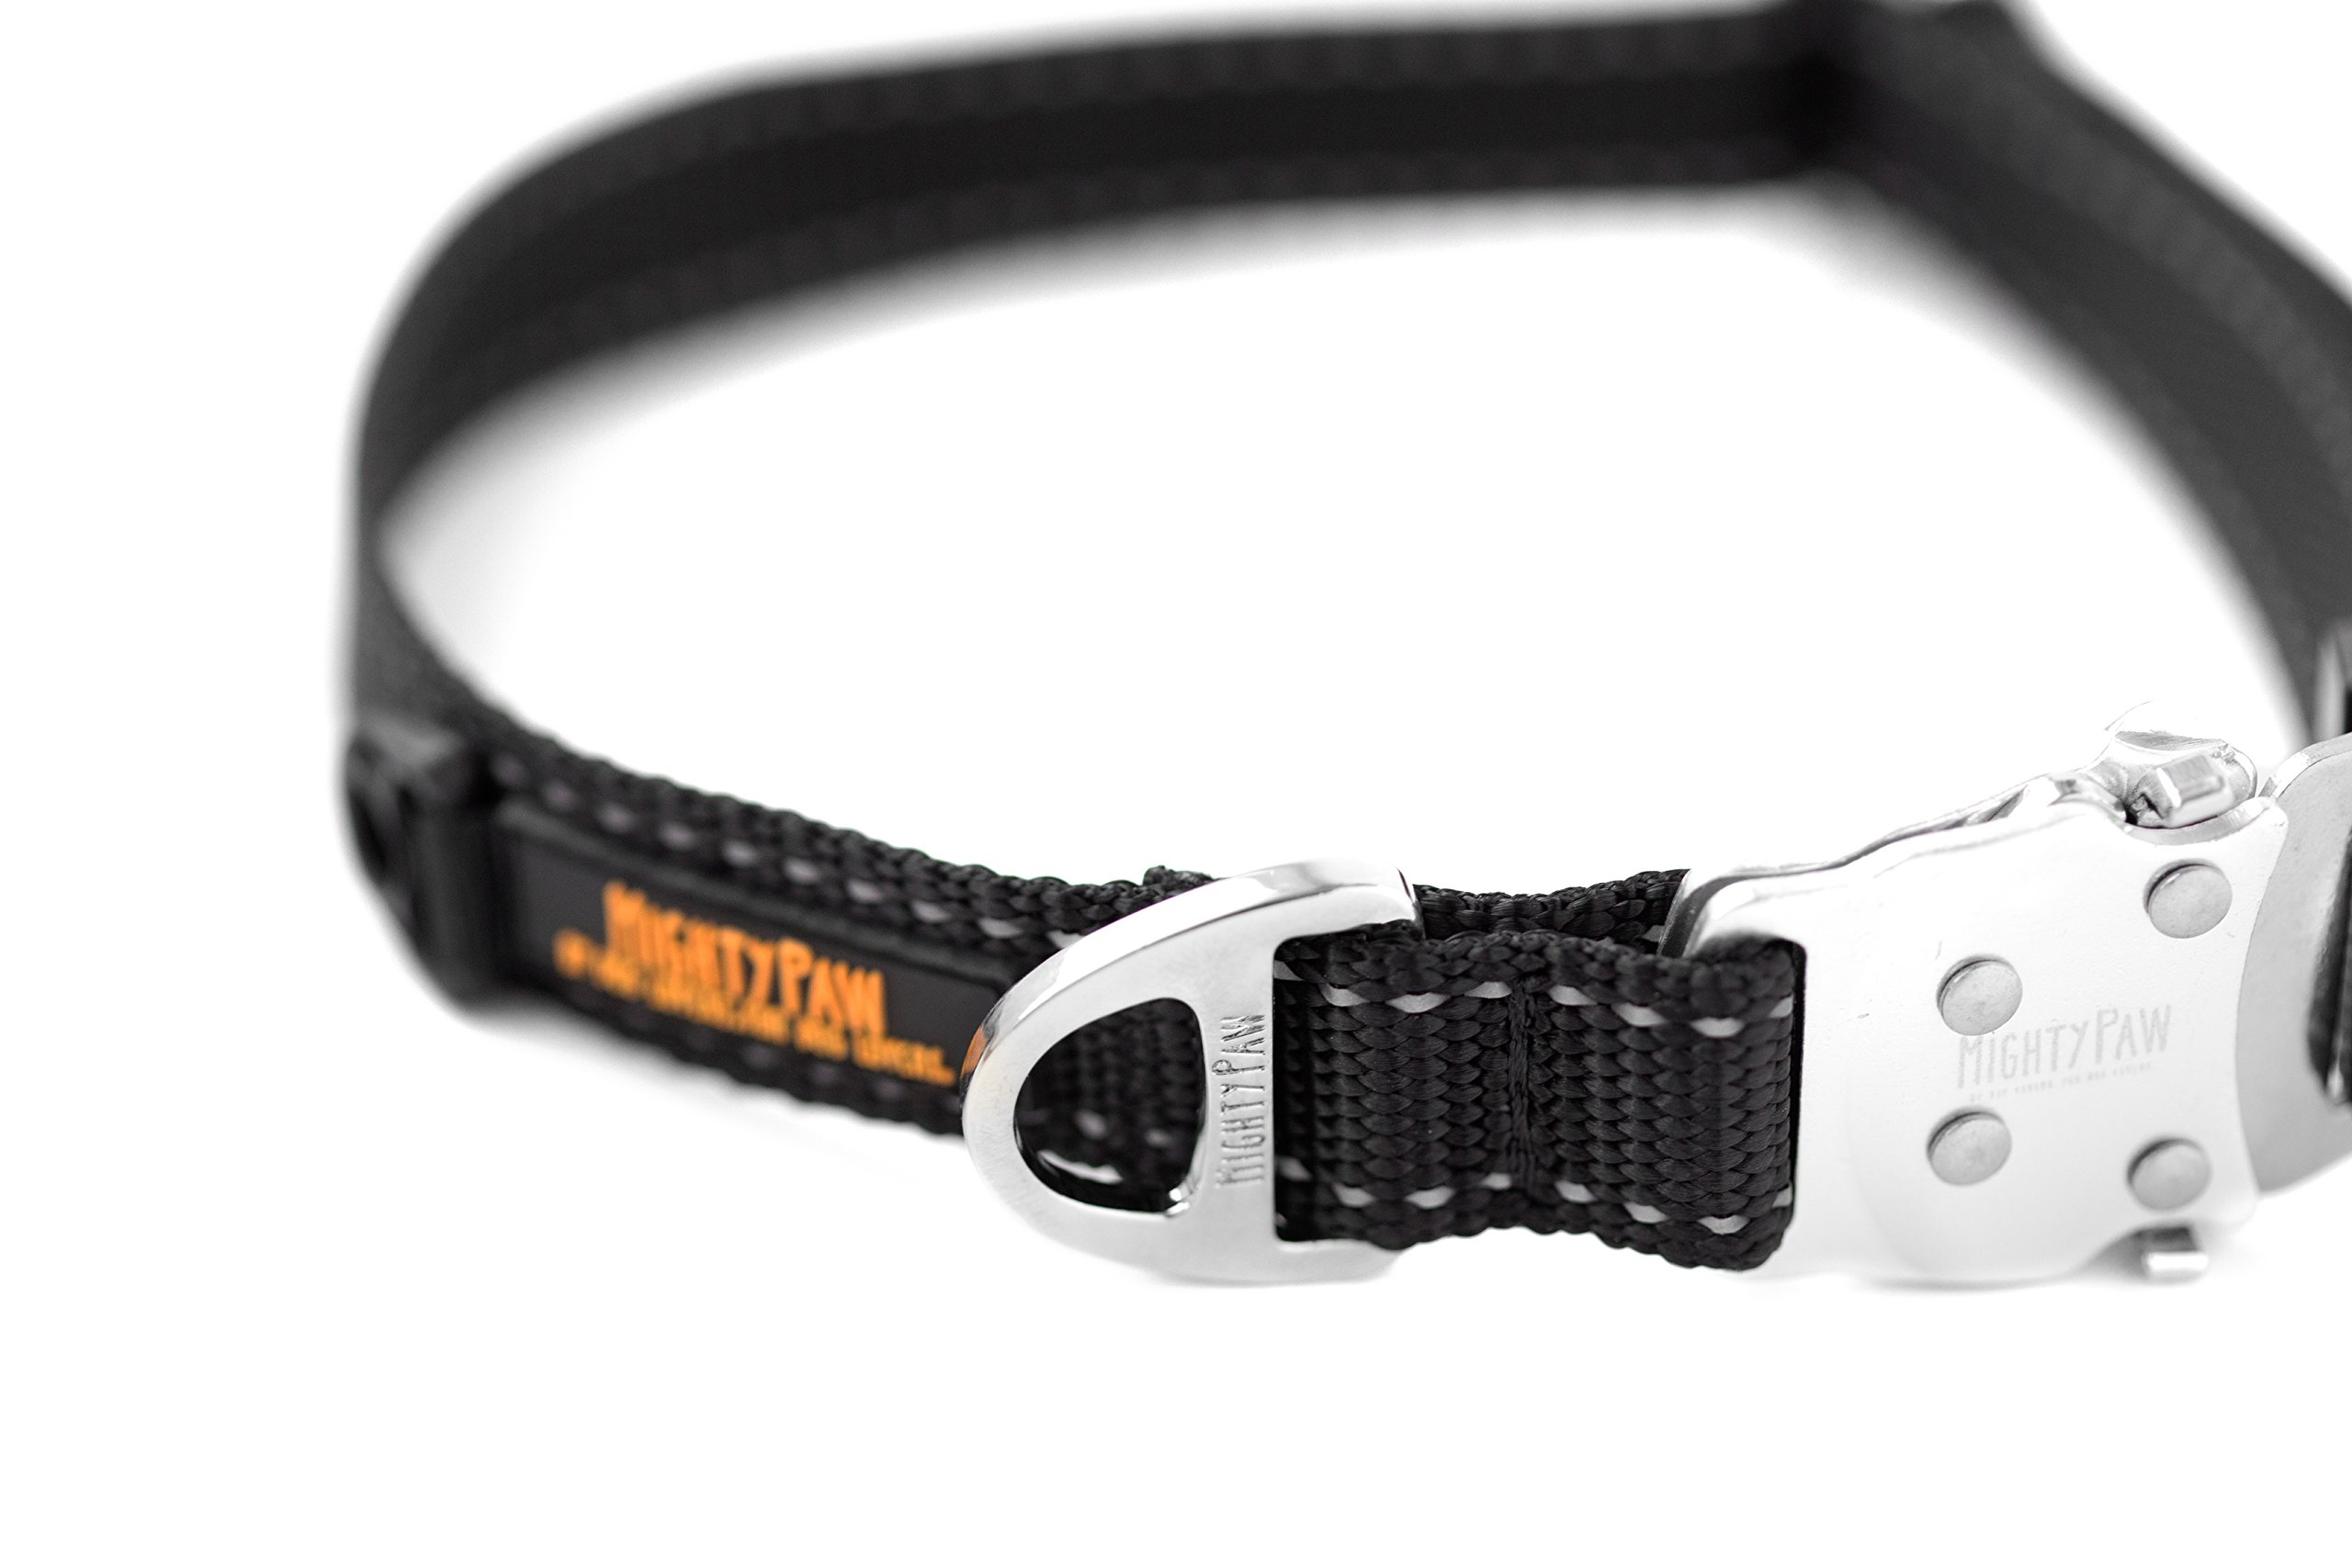 Mighty Paw Metal Buckle Dog Collar, All Metal Hardware, Lightweight Collar, Reflective Stitching, Strong, Durable (Medium, Black) by Mighty Paw (Image #9)